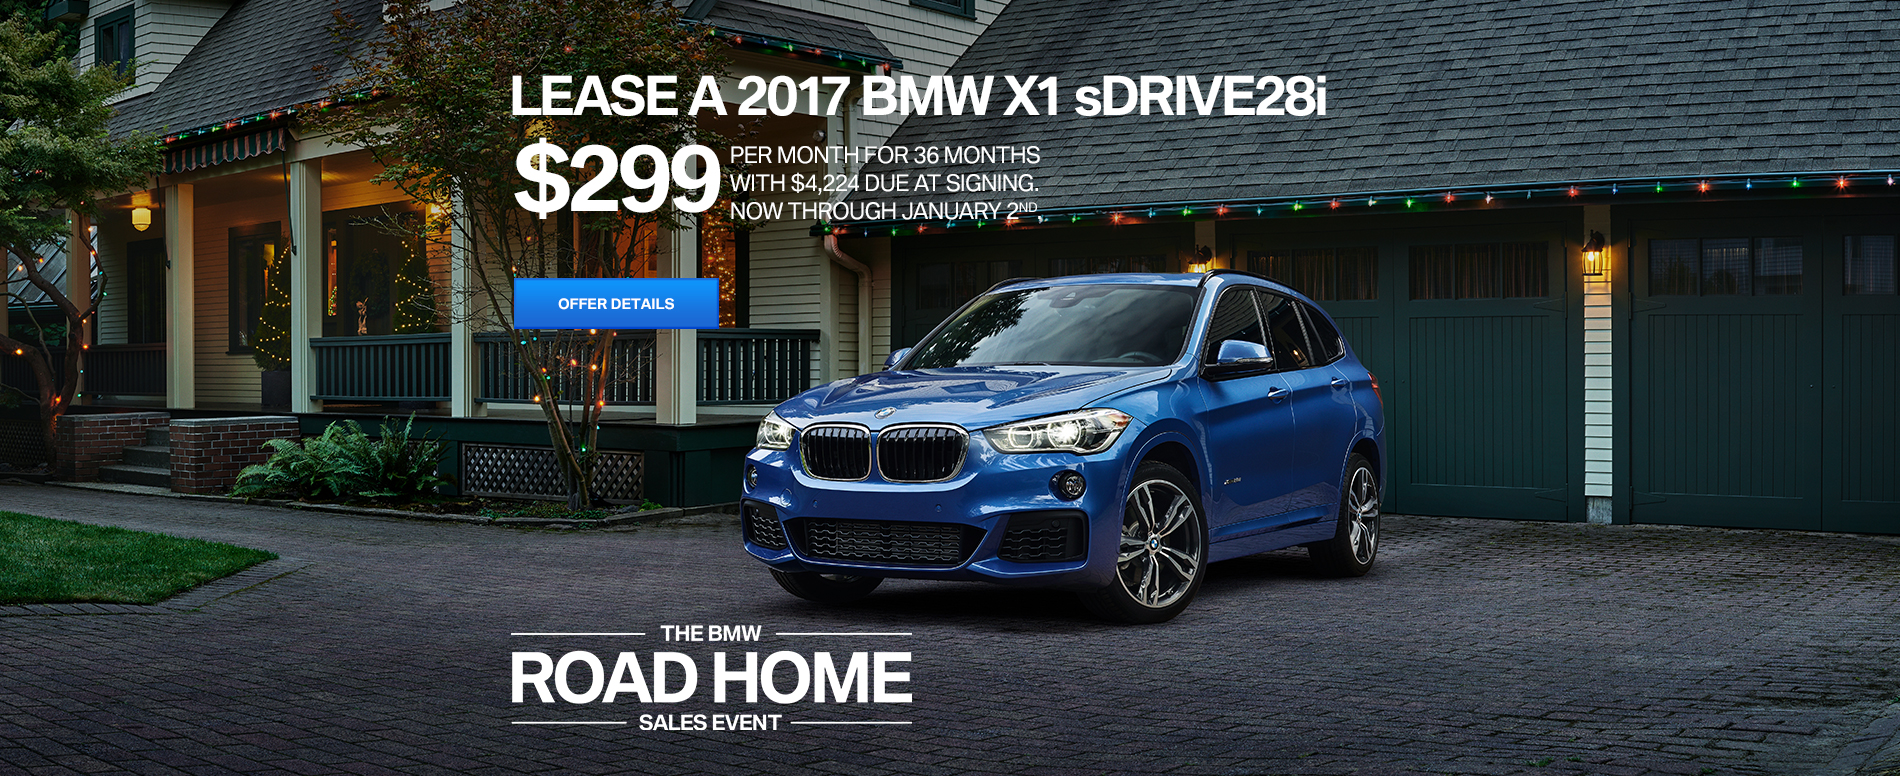 LEASE A 2017 X1 sDRIVE28i FOR $299 /MO FOR 36 MONTHS WITH $4,224